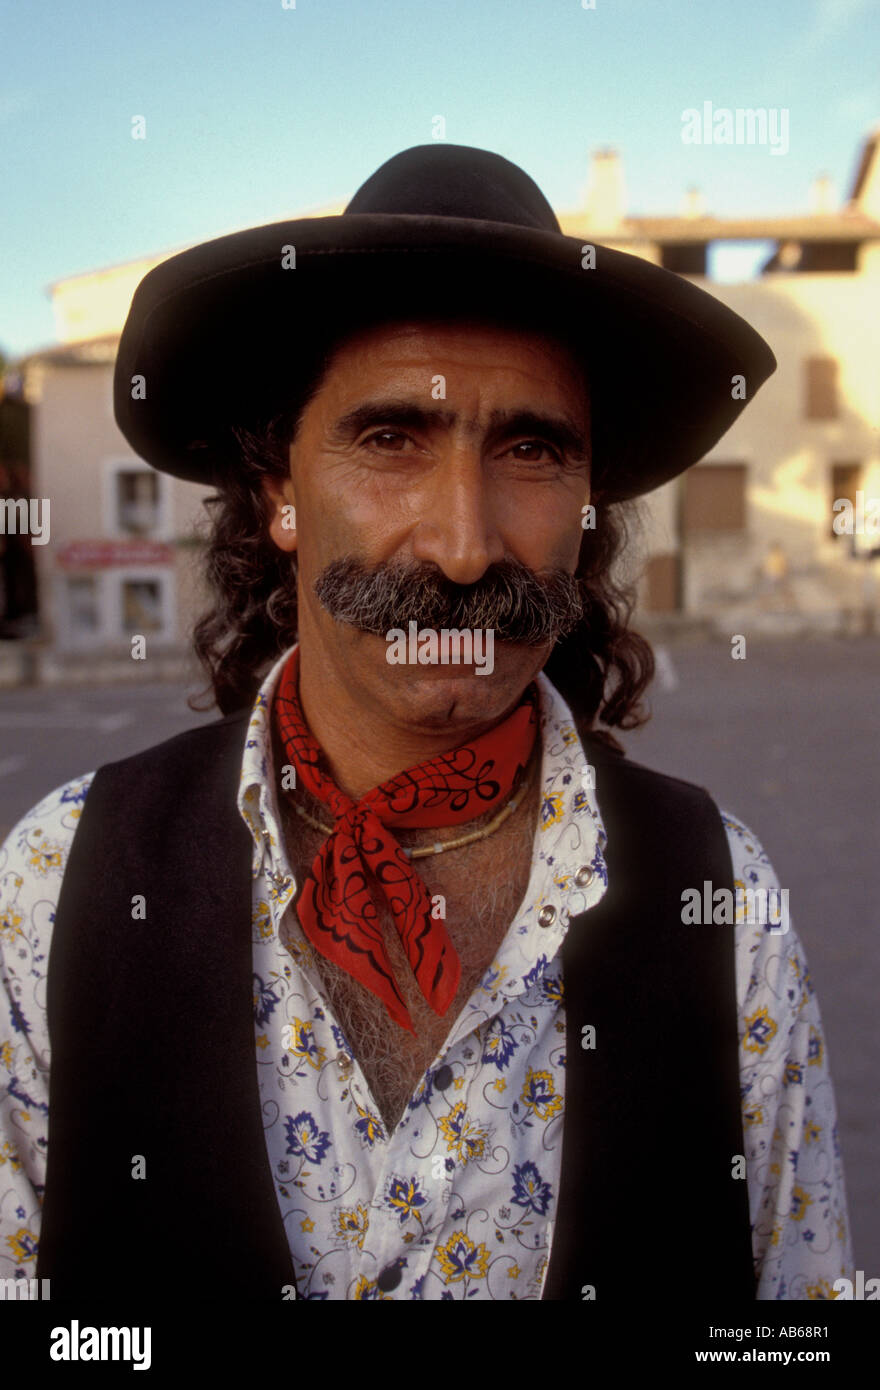 1, one, Frenchman, French man, eye contact, front view, head and shoulders, portrait, festival, town, Pernes-les-Fontaines, Provence, France - Stock Image